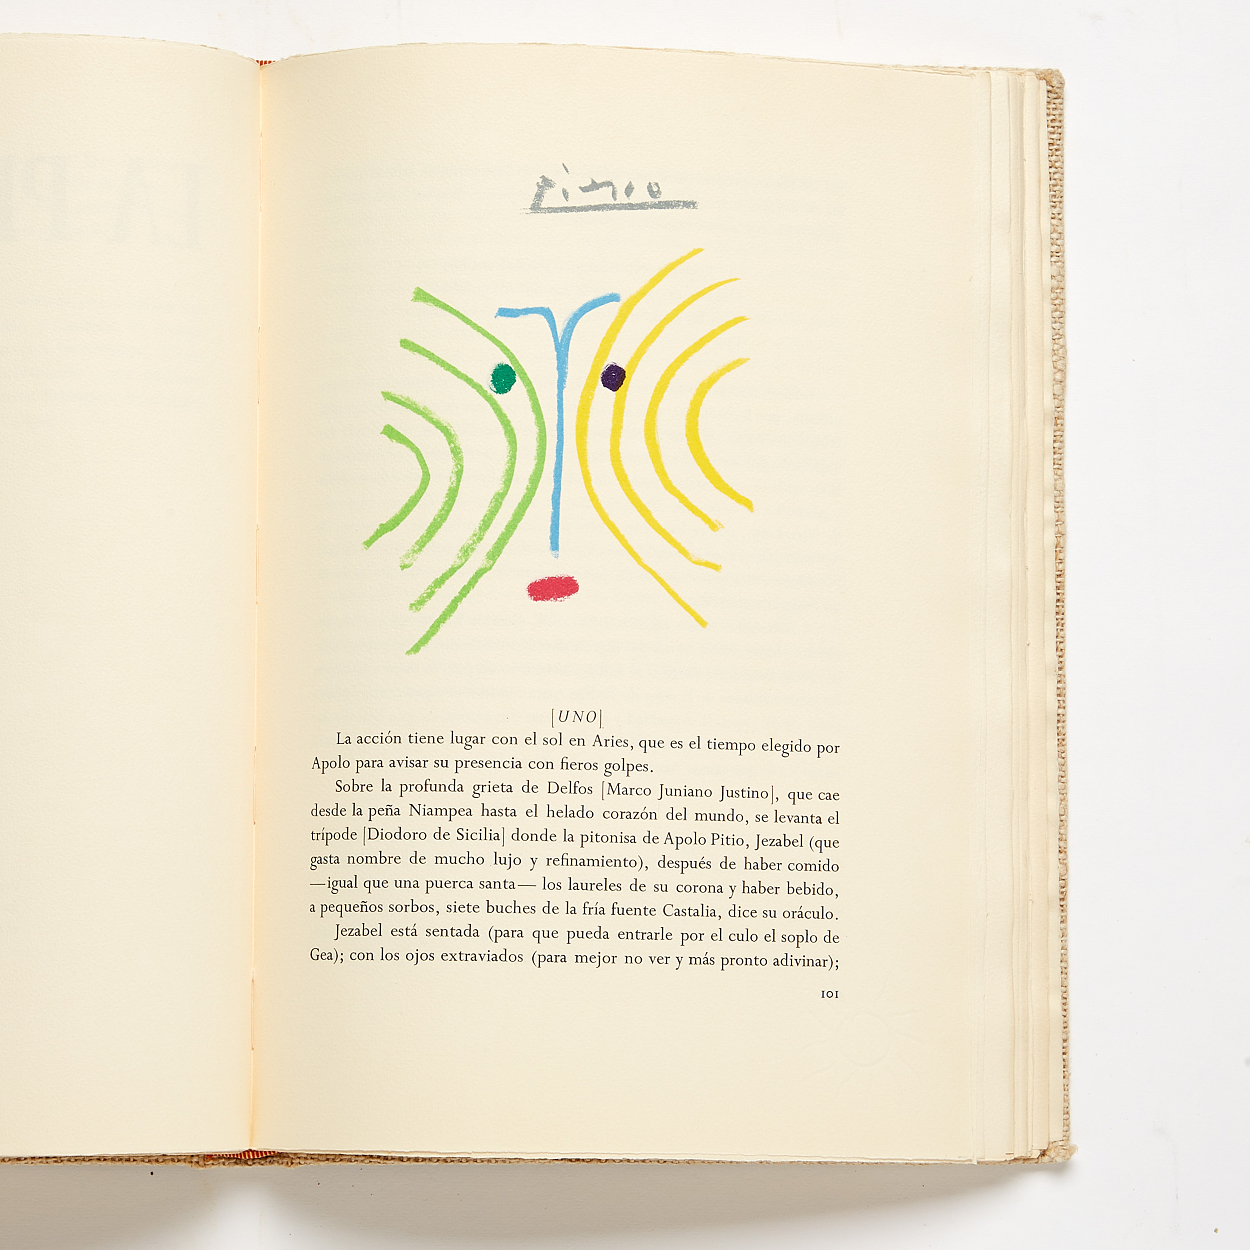 Coloured illustrations after Picasso 1962